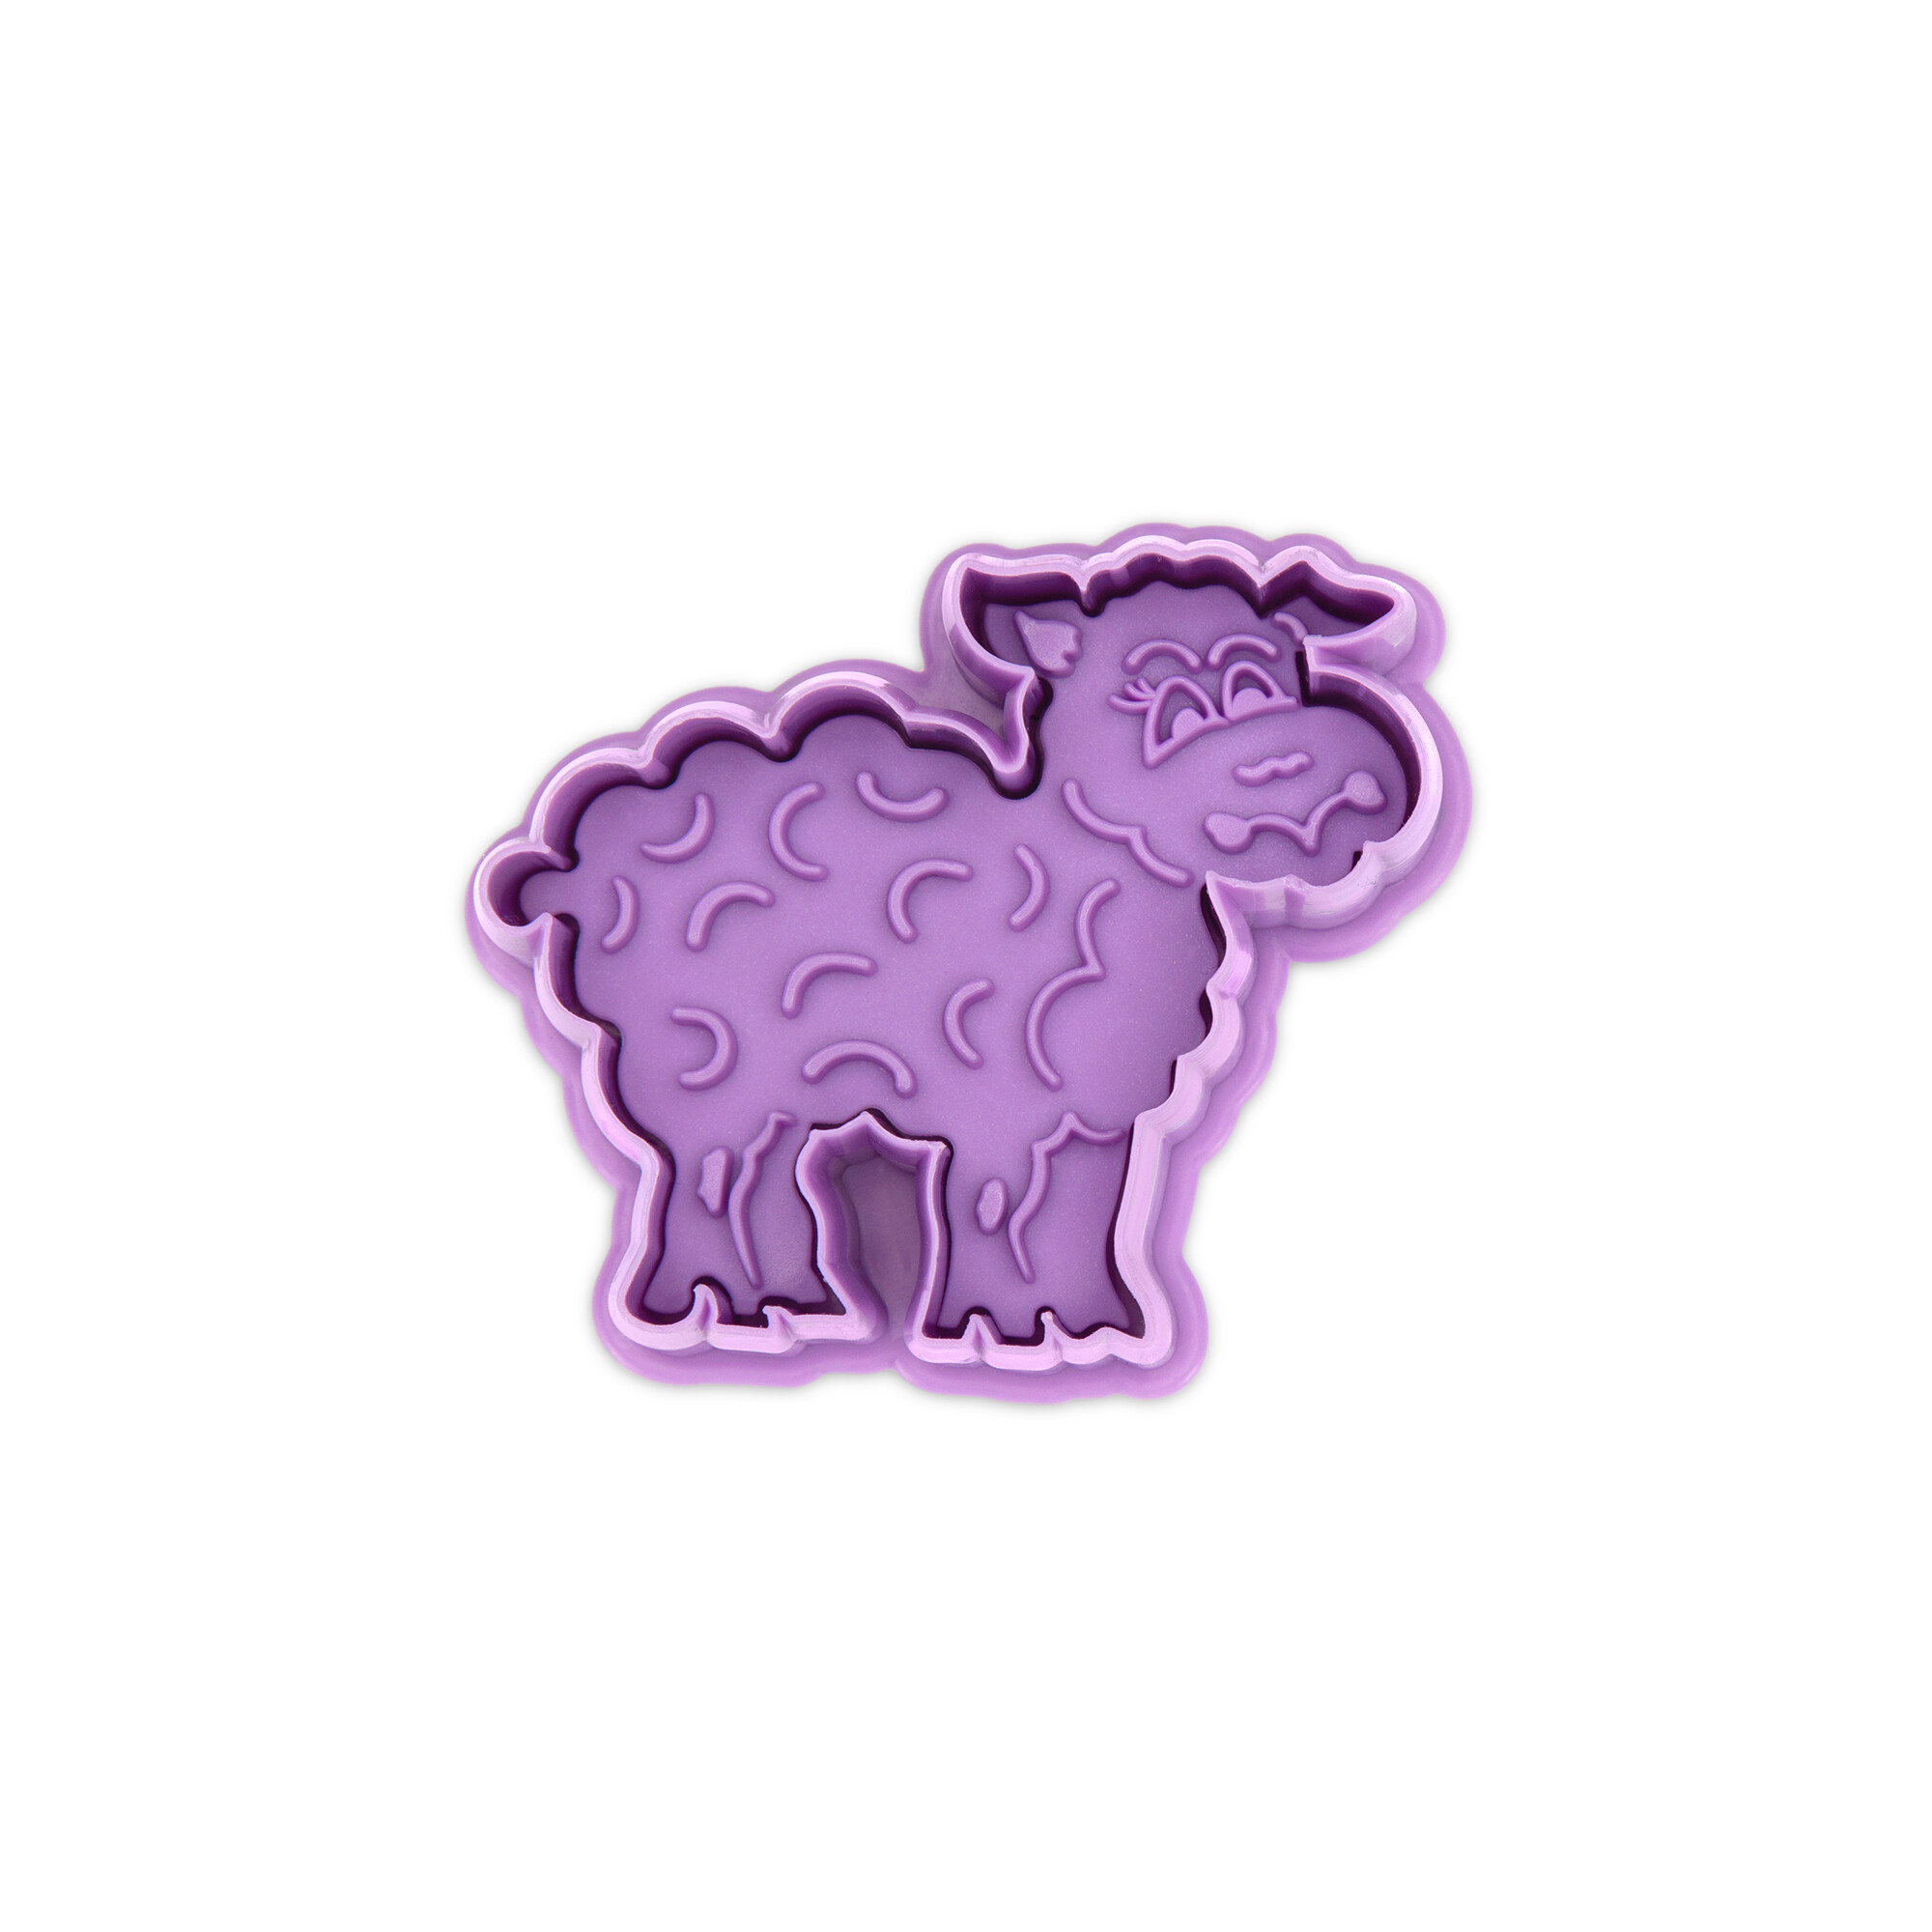 Cookie cutter with stamp and ejector - Sheep